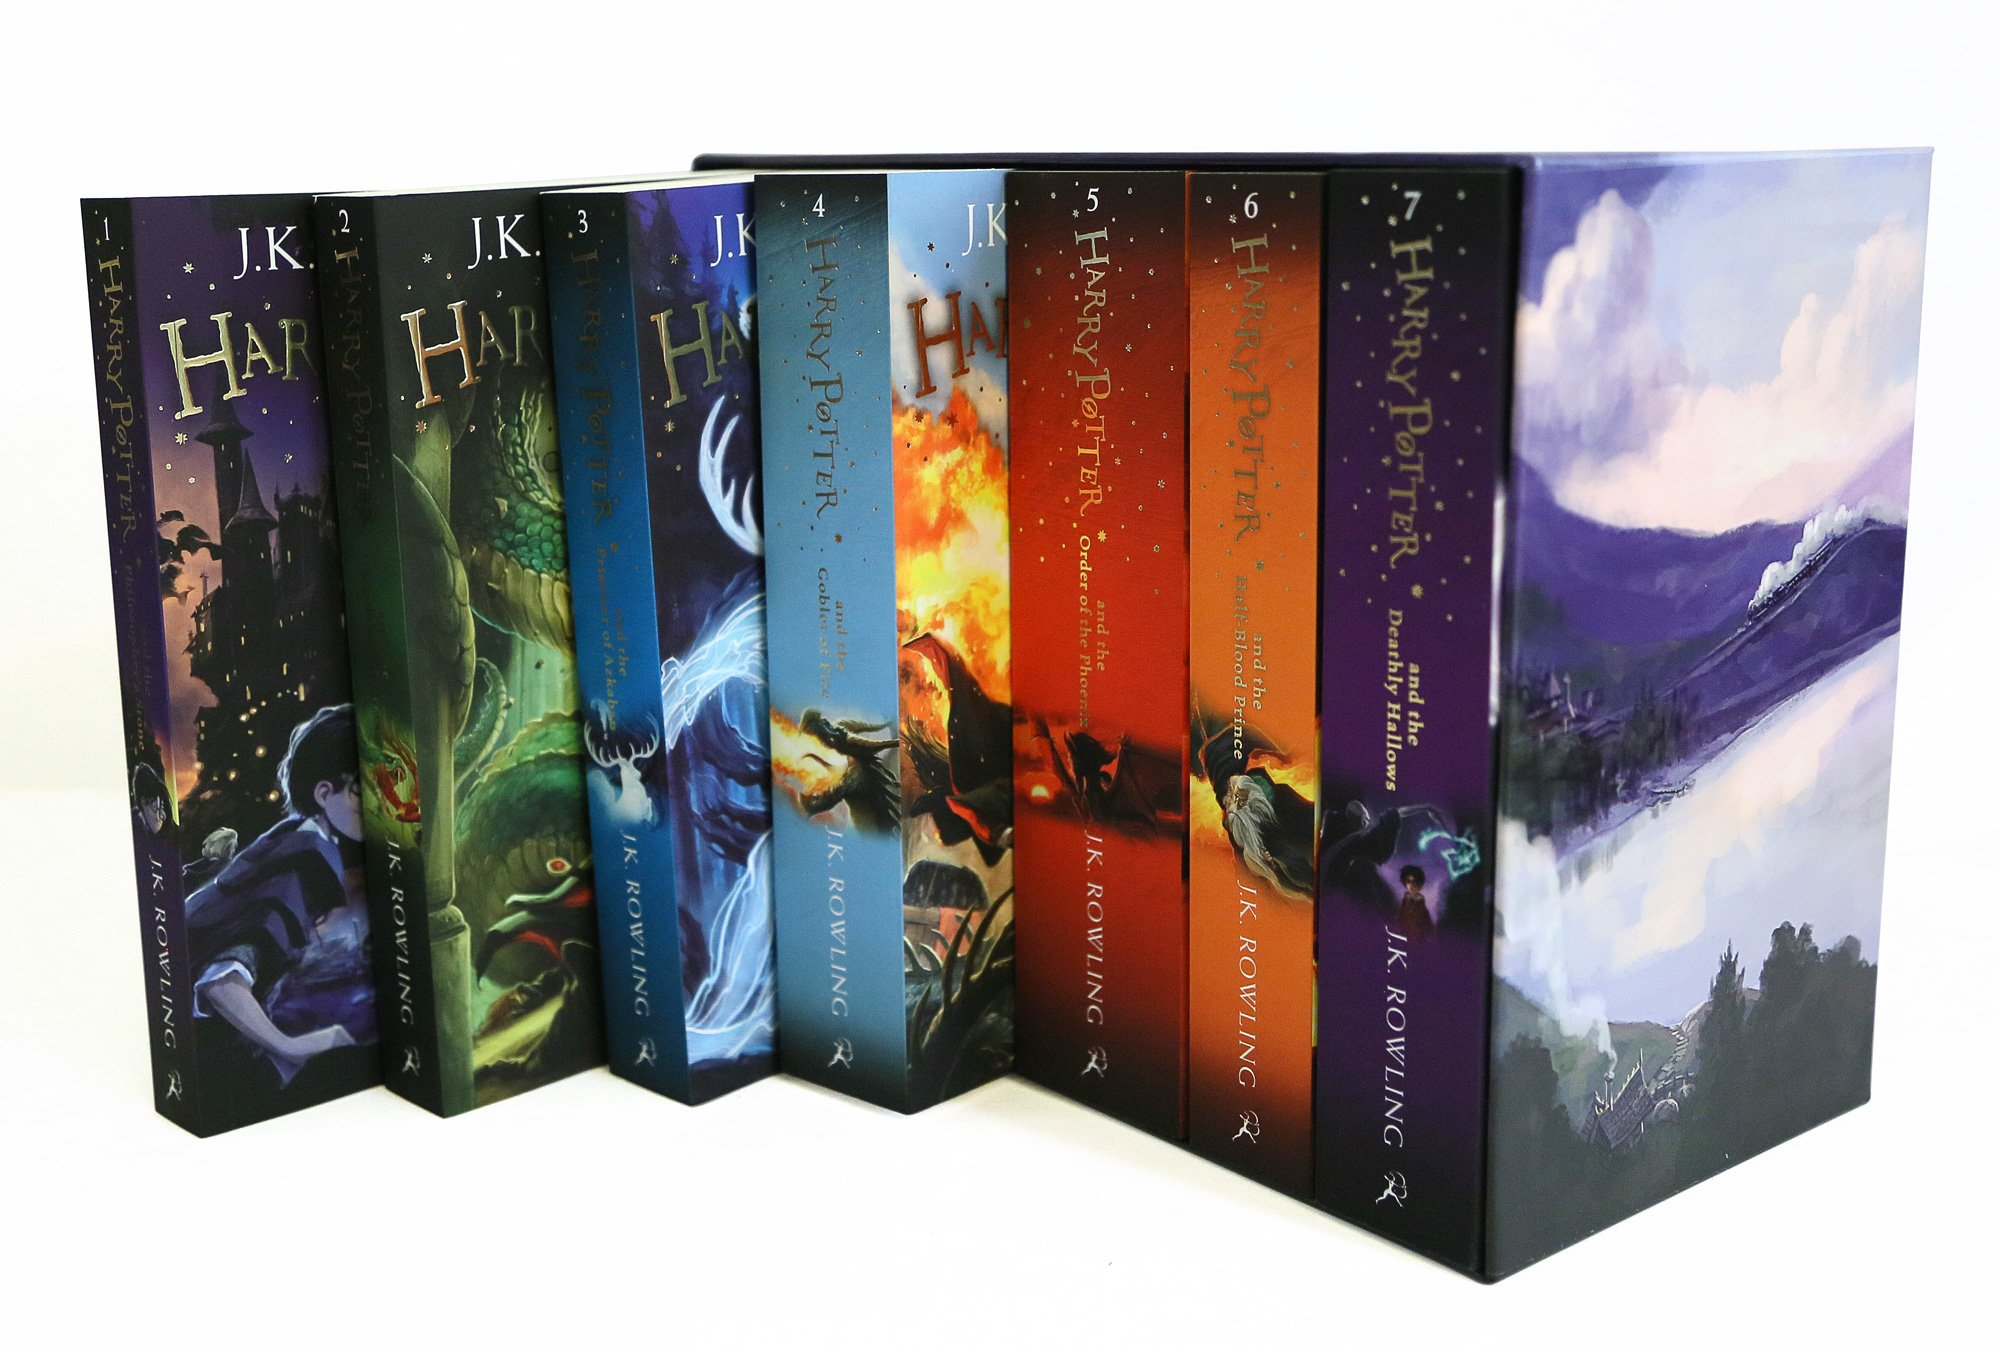 NEW SEALED BOX SET WITH ALL 7 HARRY POTTER BOOKS 1-7 BY J.K